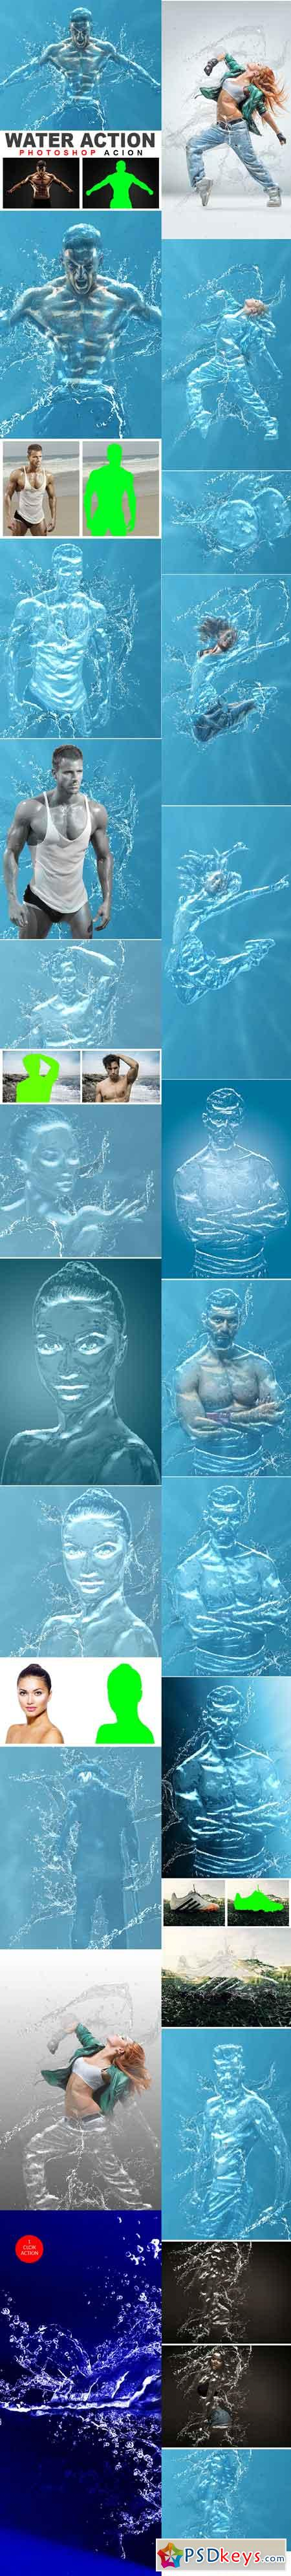 Water Photoshop Action Photo Effects 20545376